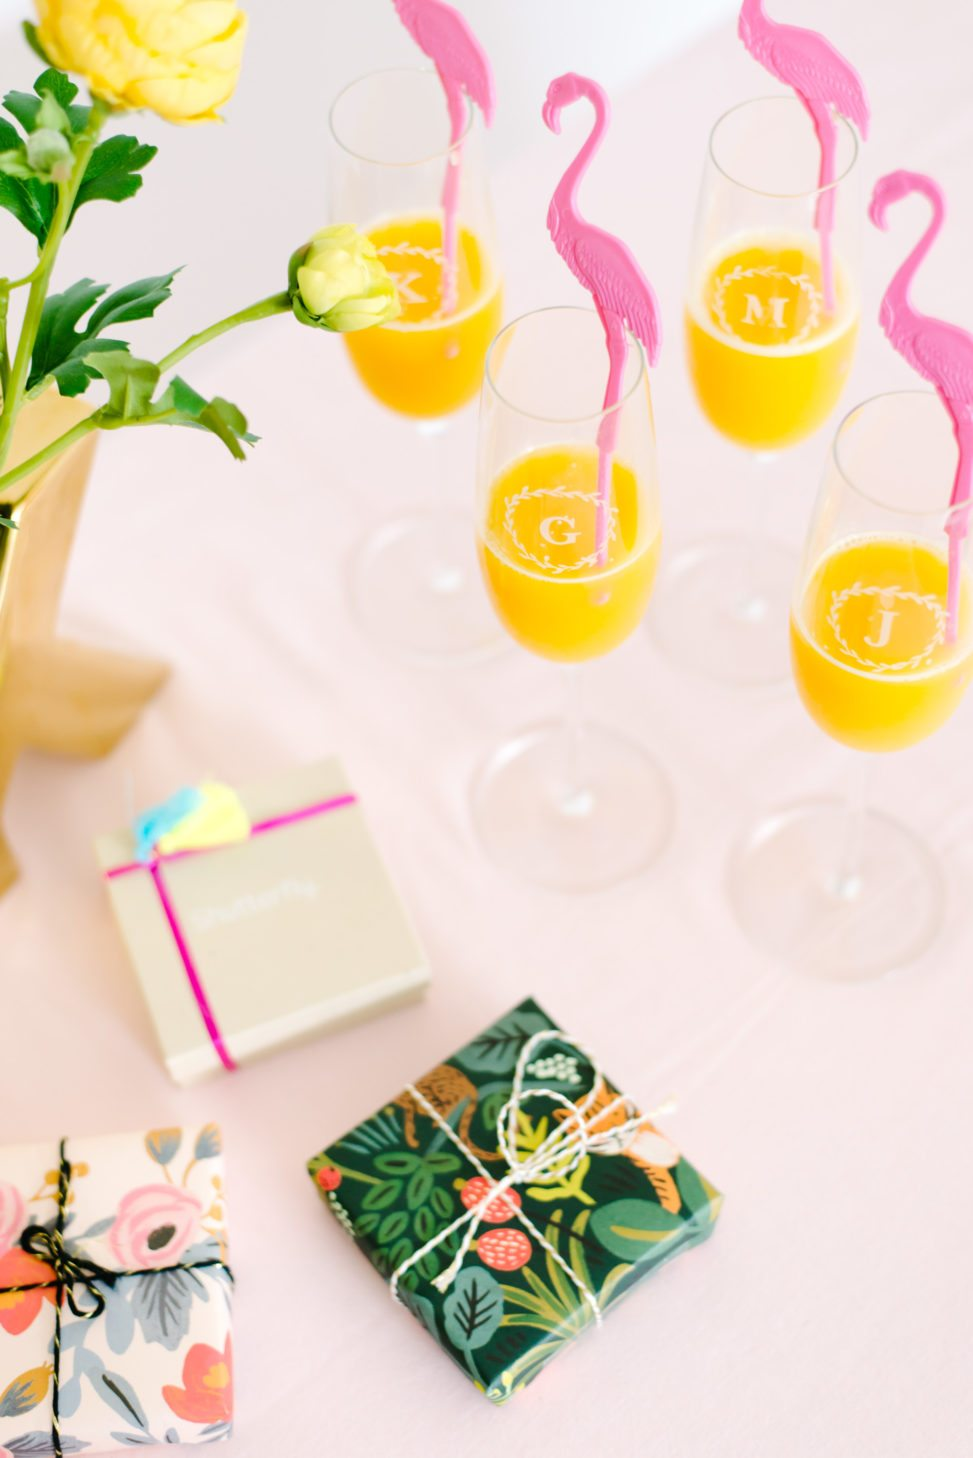 four personalized champagne glasses from Shutterfly with pink flamingo drink stirrers next to a pile of wrapped presents